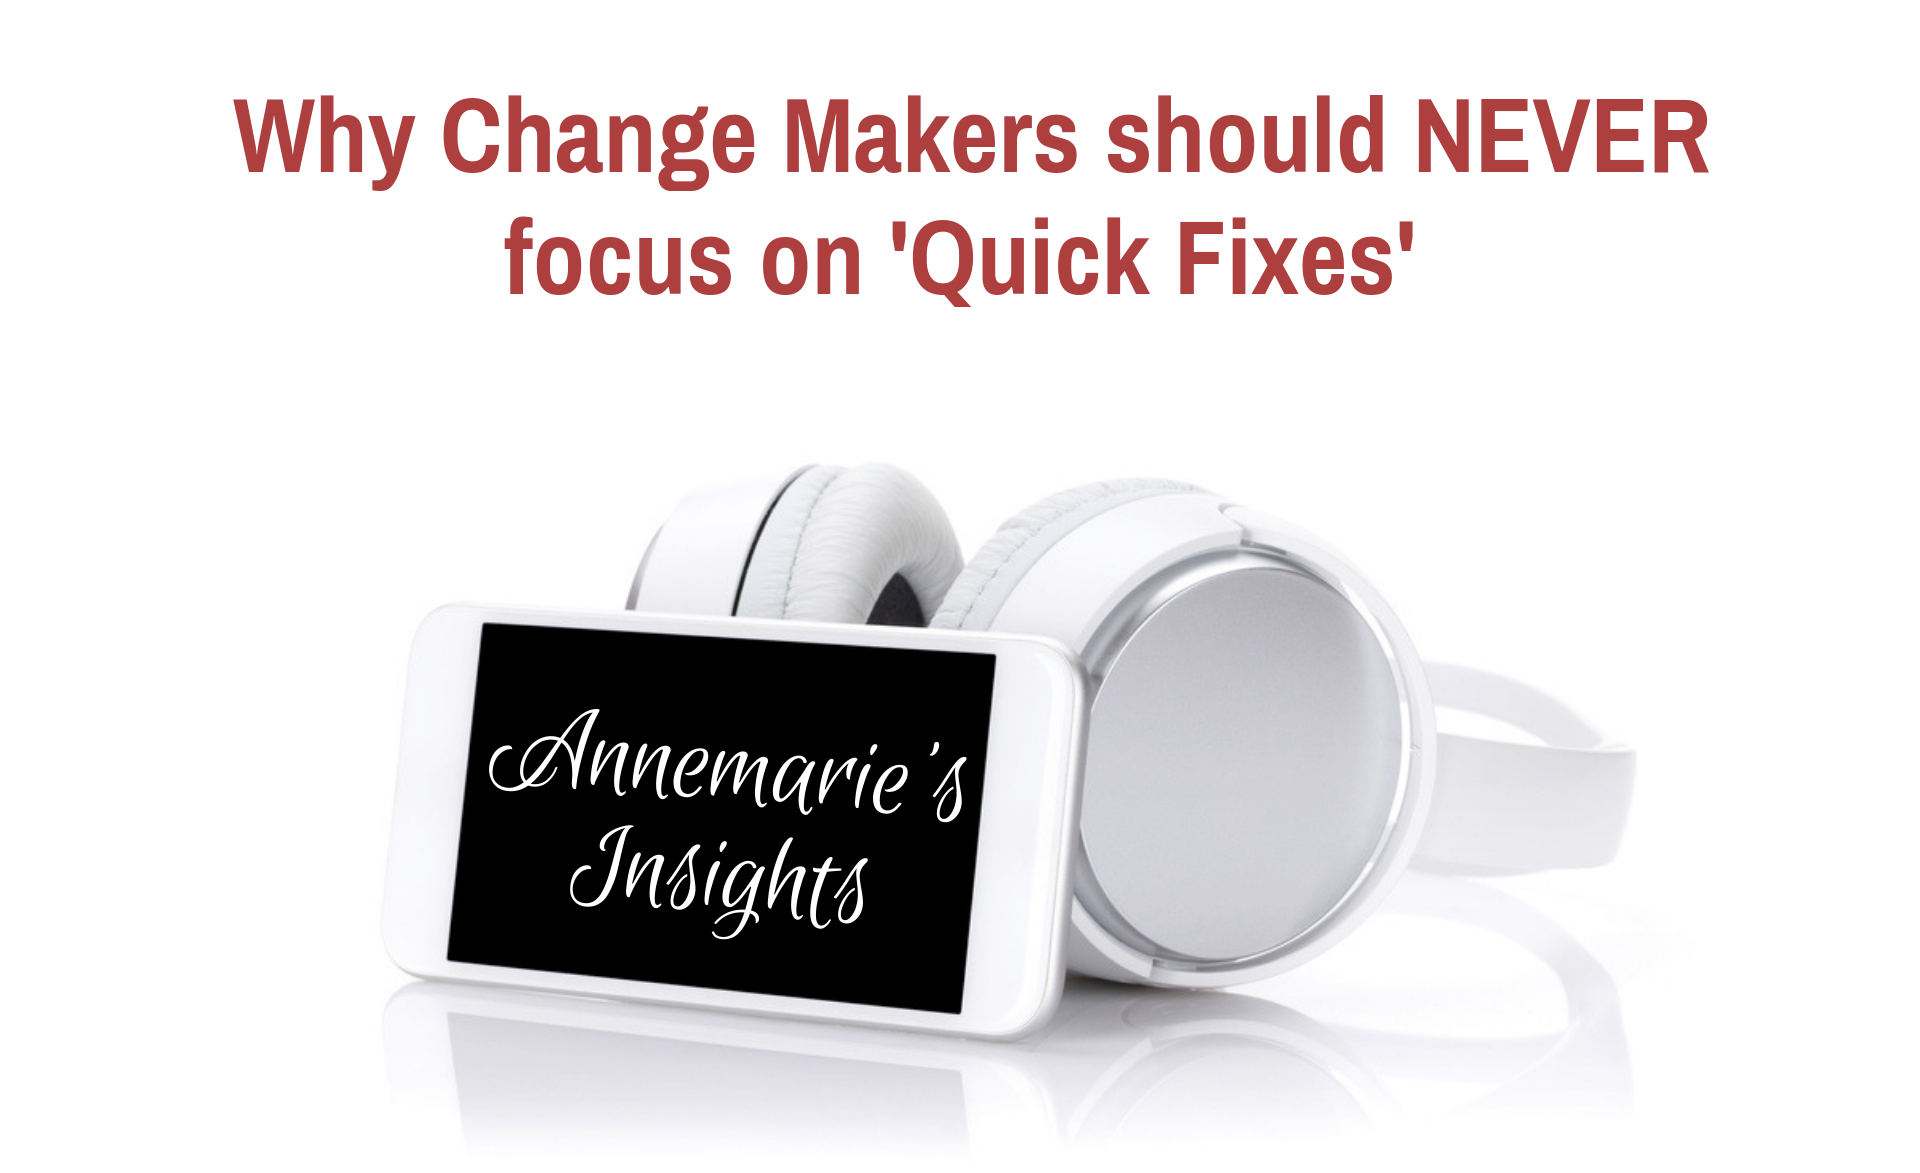 Why Change Makers should NEVER focus on Quick Fixes in their marketing